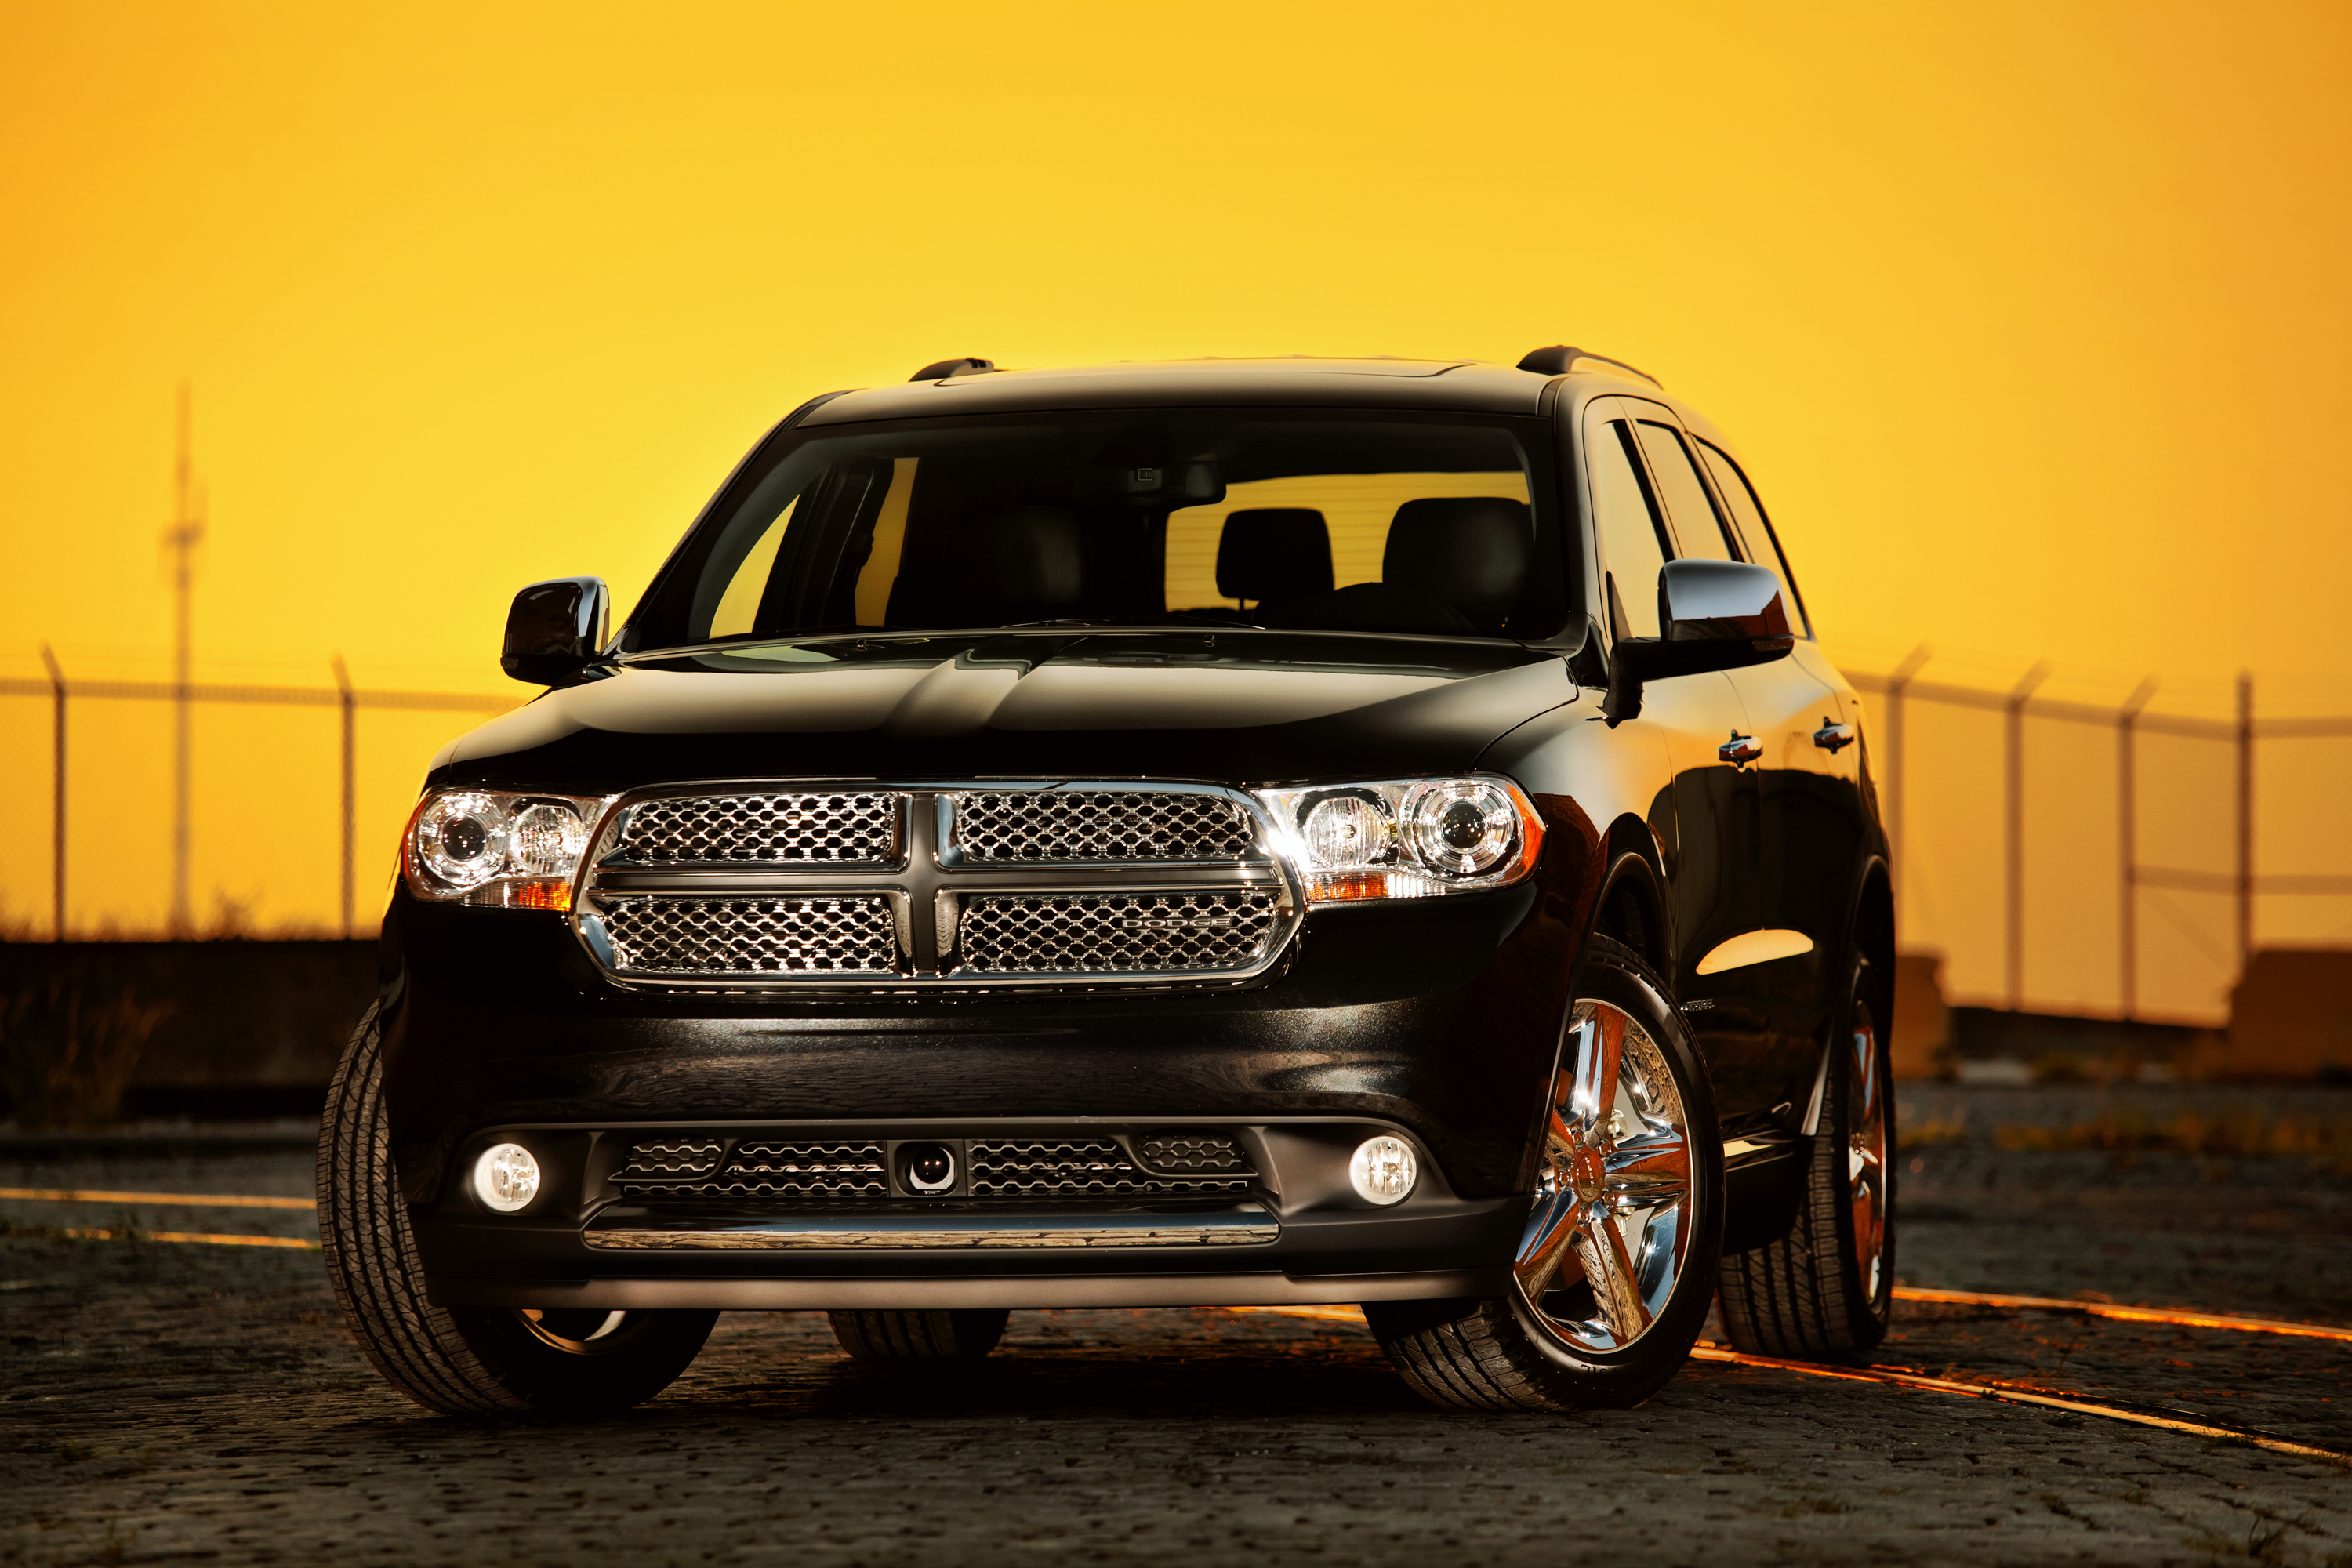 unveiled 2011 dodge durango road reality. Black Bedroom Furniture Sets. Home Design Ideas